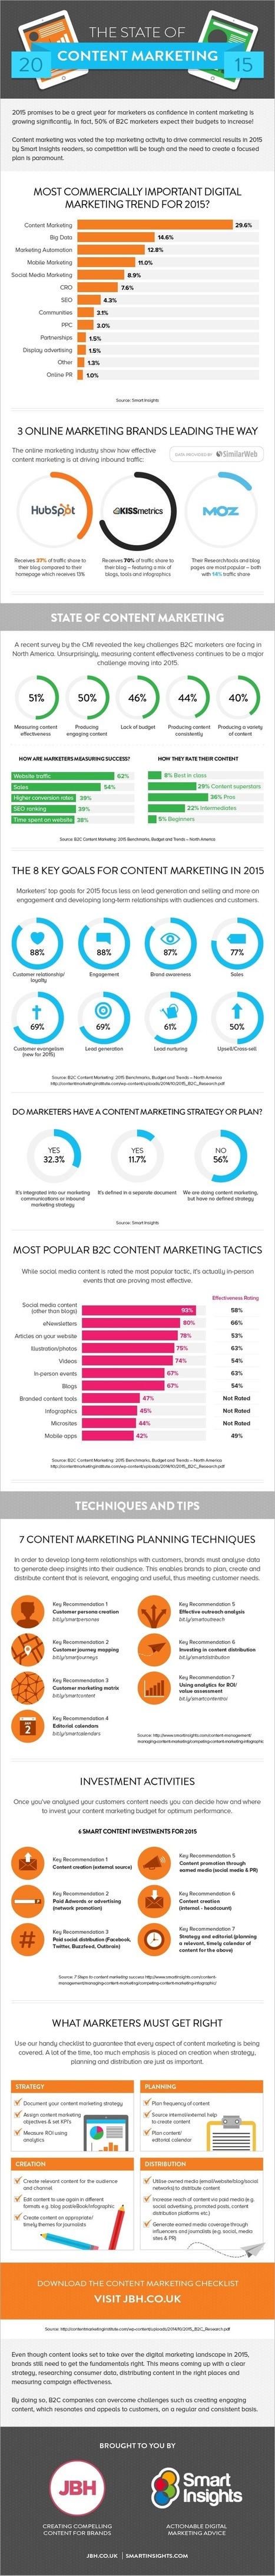 Infographic: The State of Content Marketing in 2015 - Similarweb Blog | Online Marketing Resources | Scoop.it